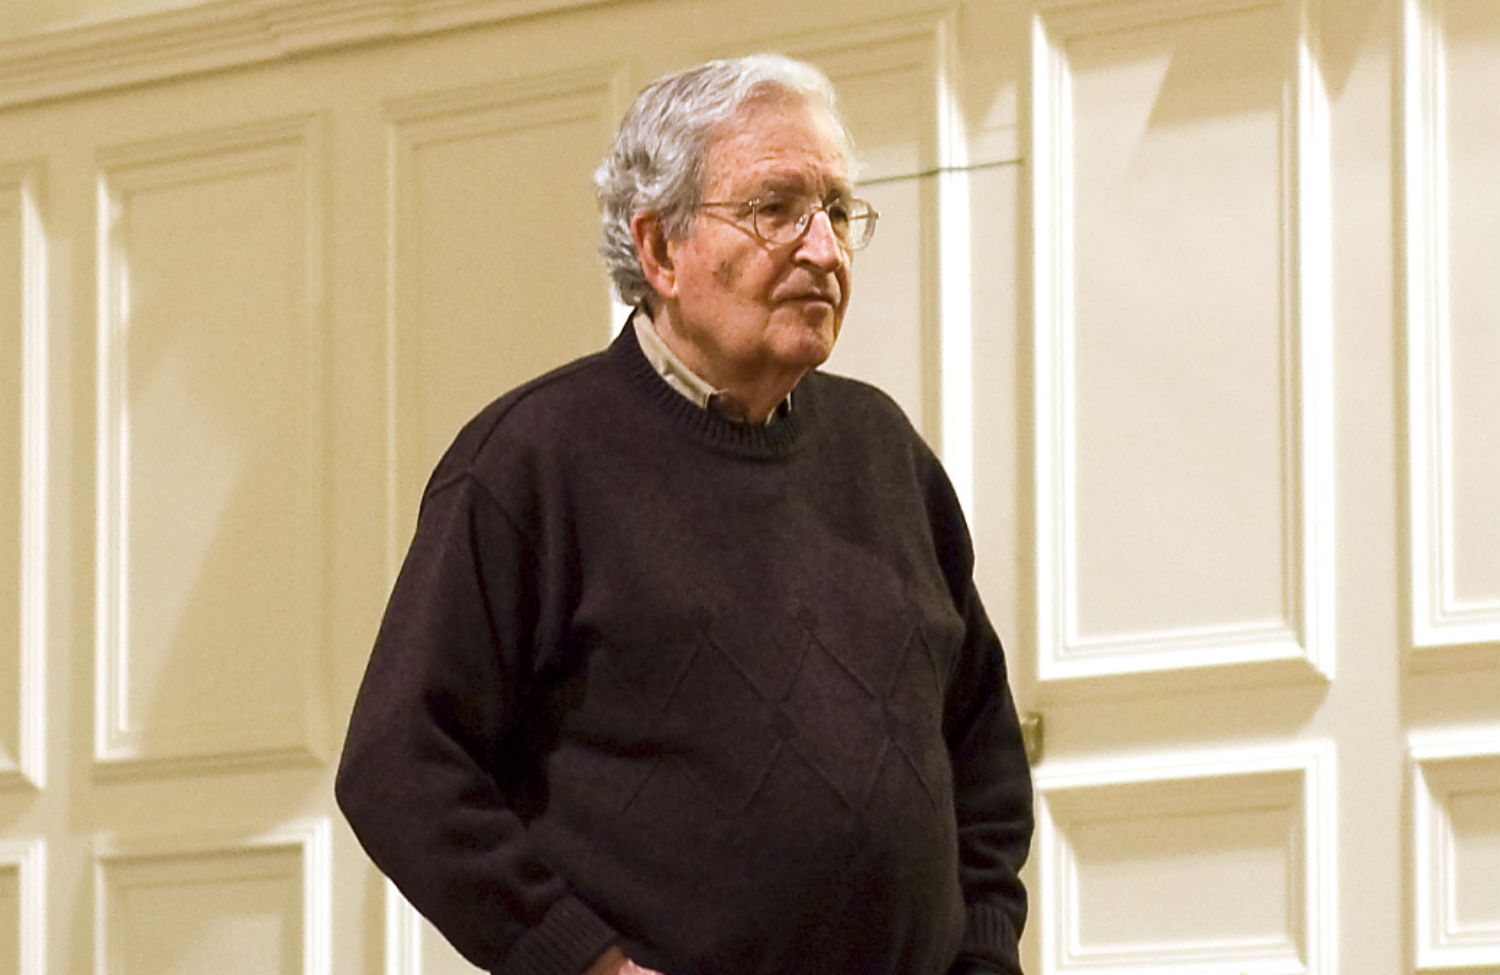 noam chomsky research paper Noam chomsky, the dead-serious the idea of a puppet play riffing on his criticisms of artifi c i al intelligence research and the social impact of.